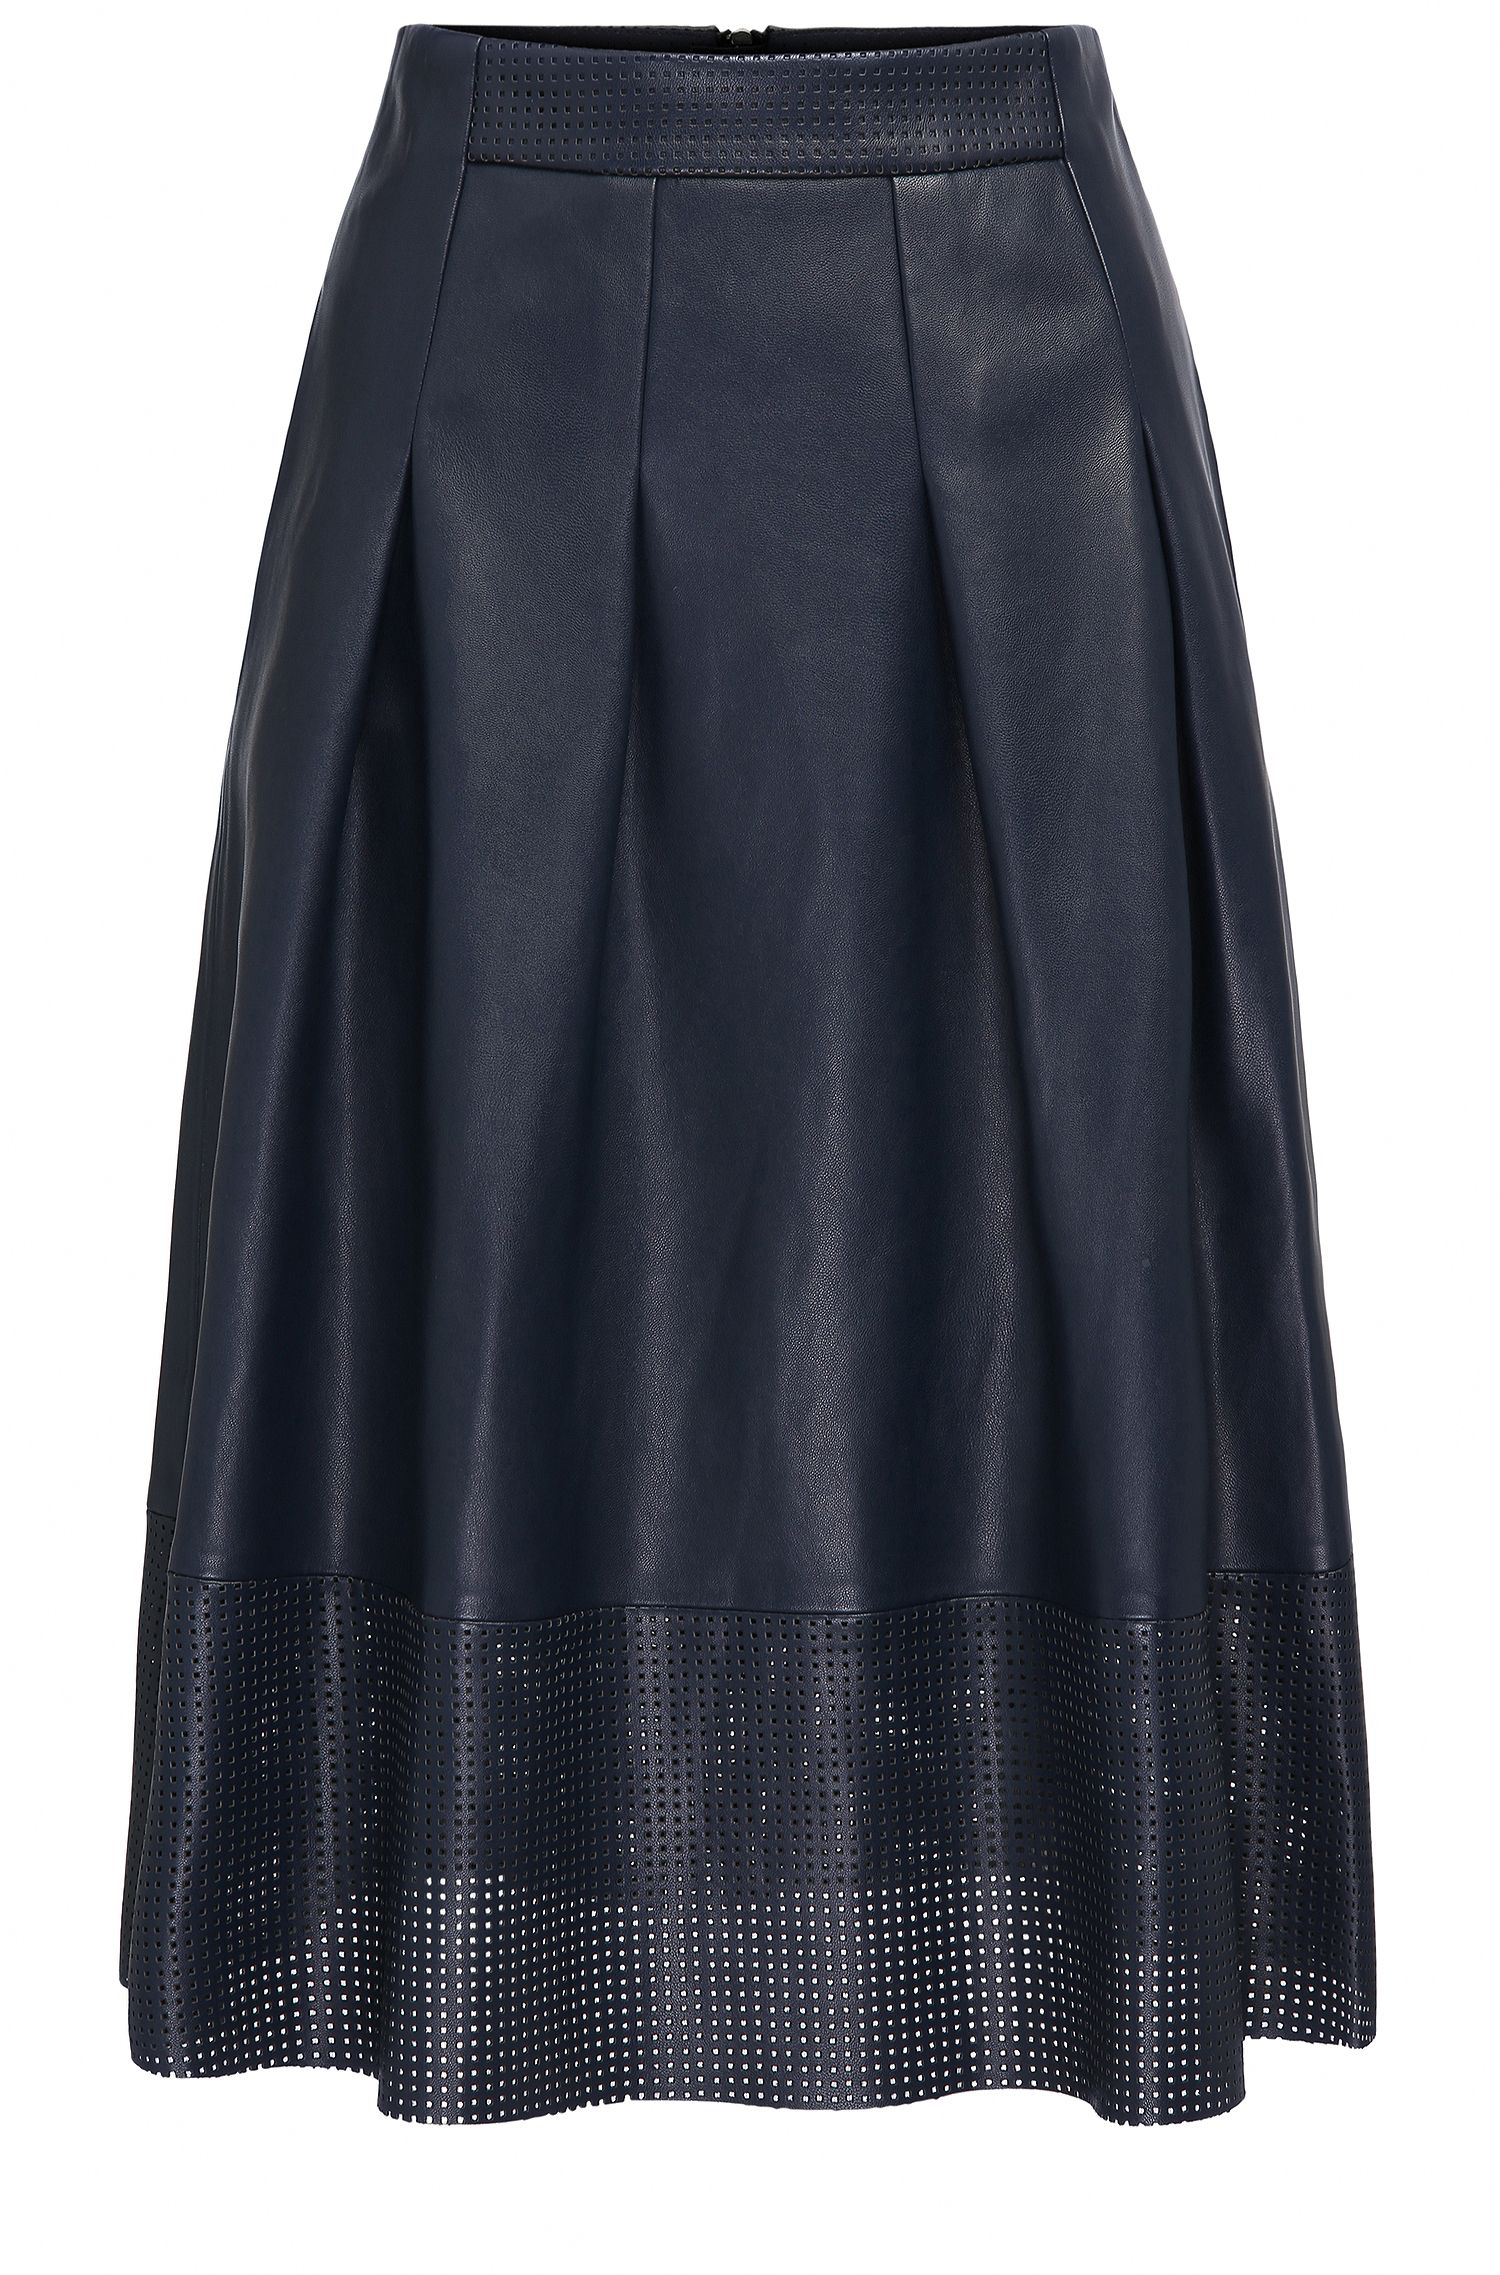 A-line faux leather midi skirt with perforated detail